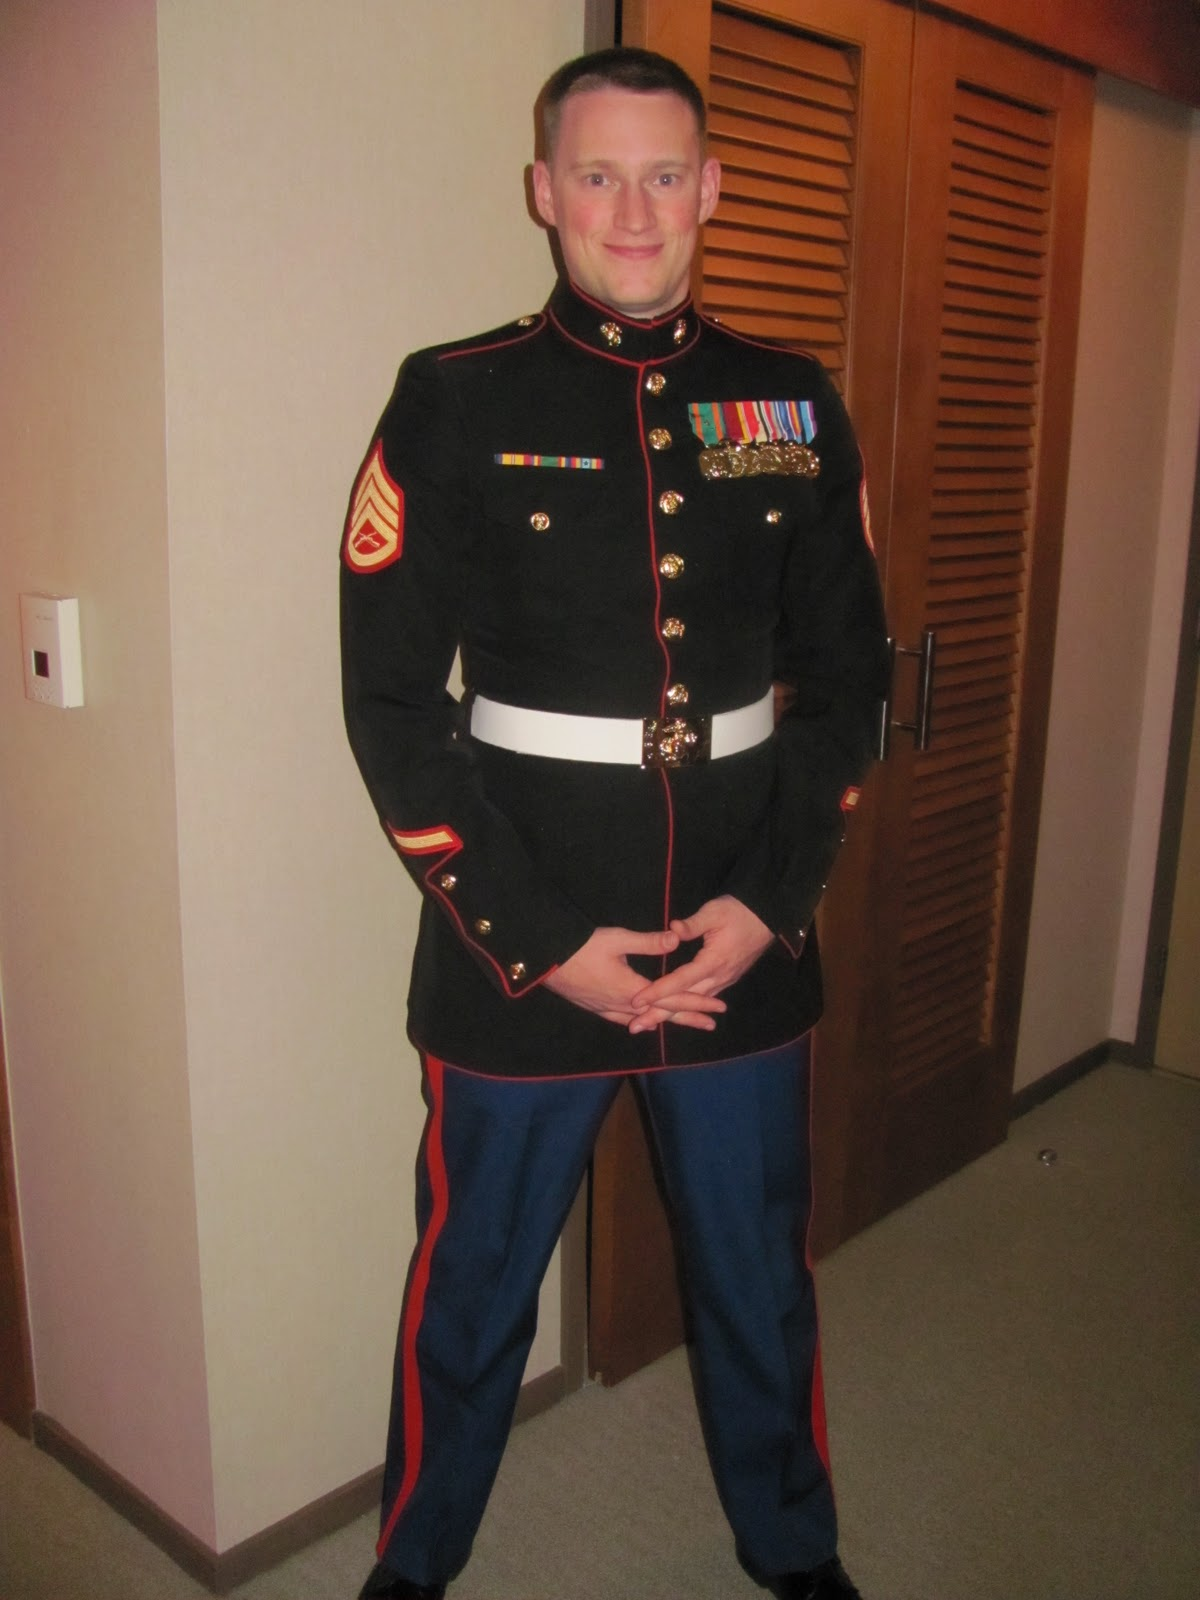 Marine Corps Dress Blues Uniform Regulations 65